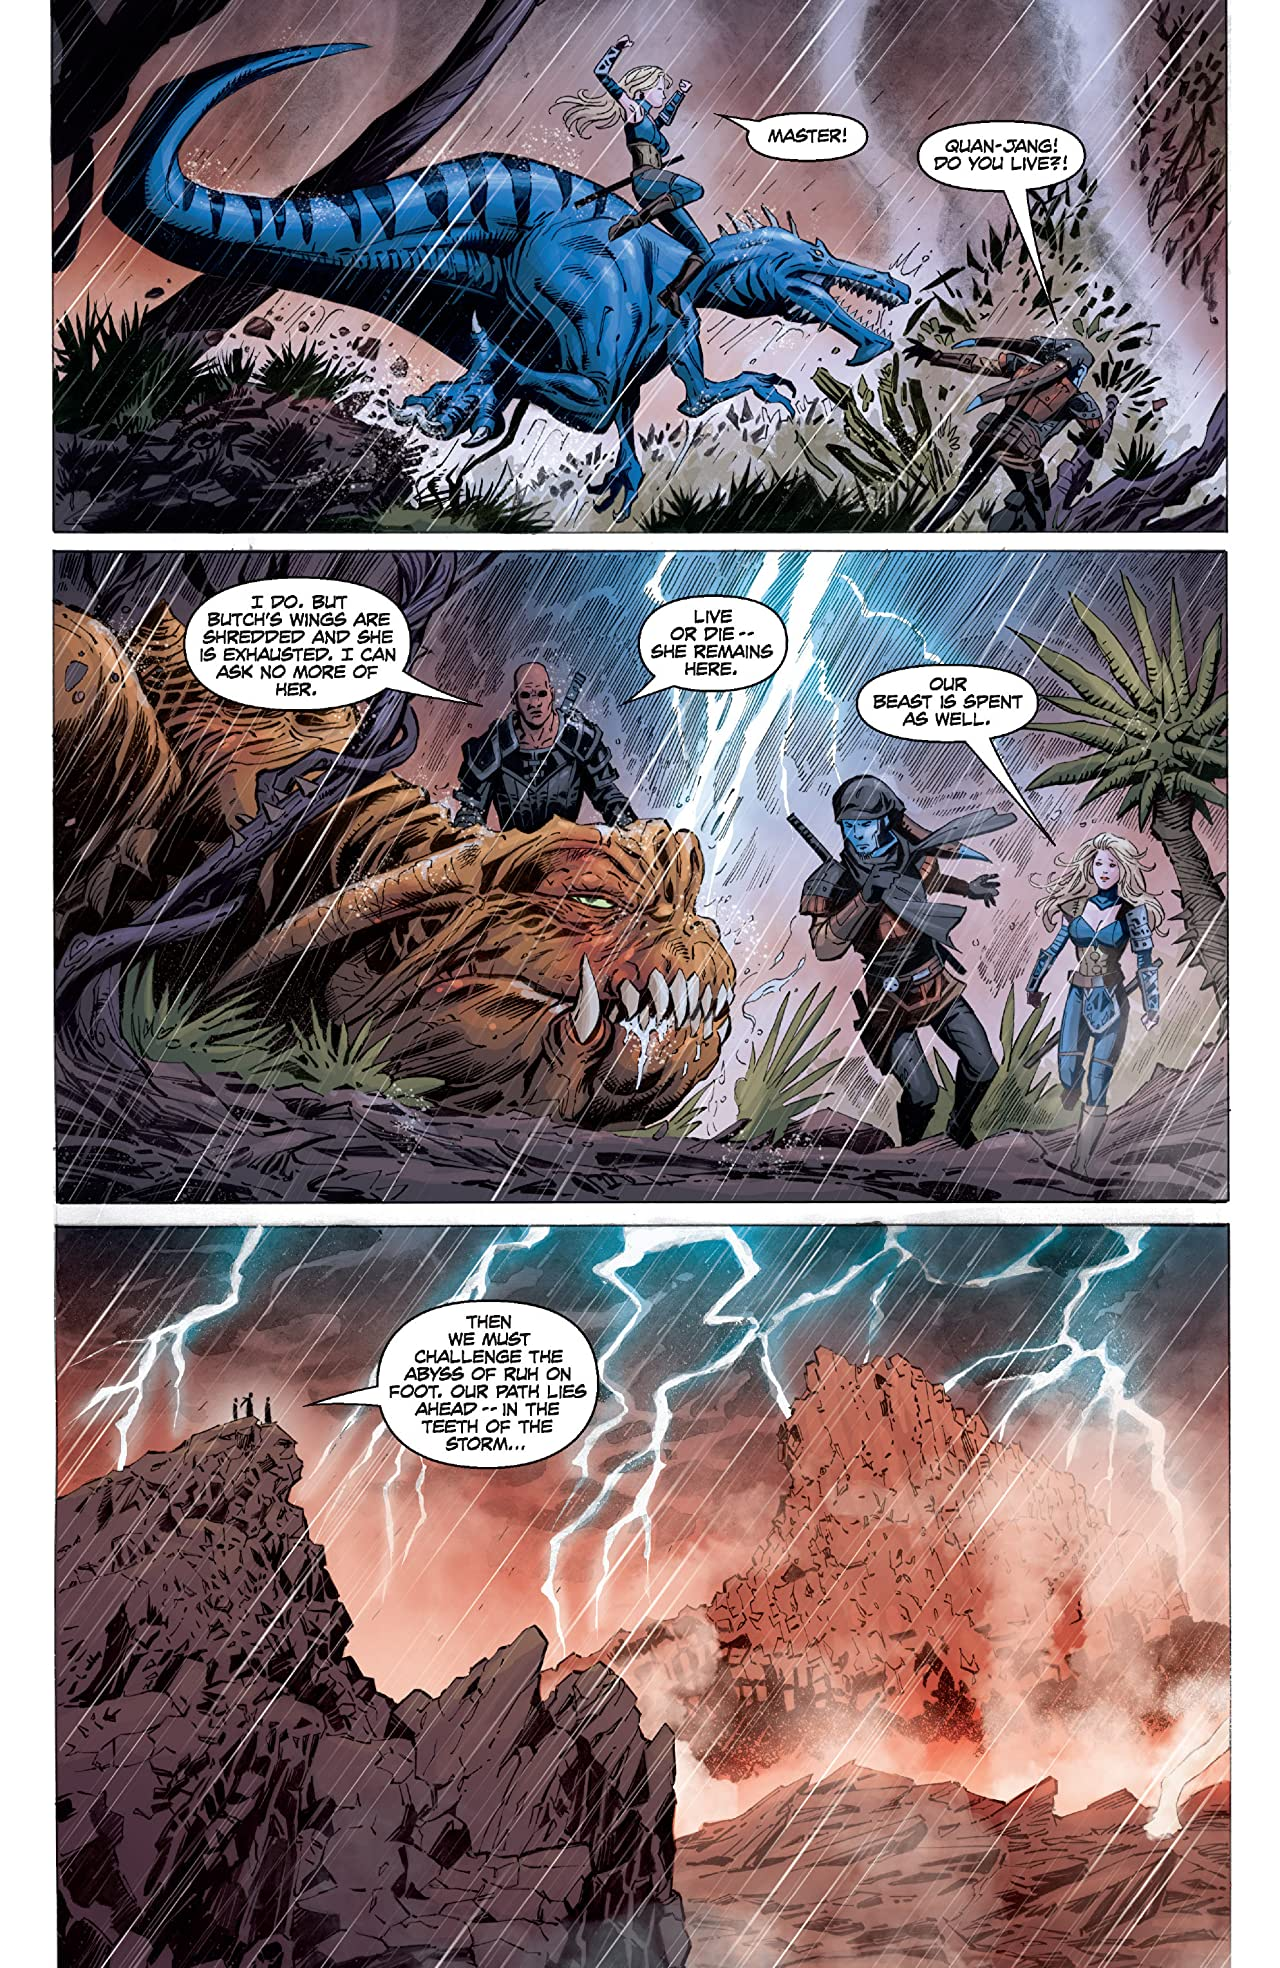 Star Wars: Dawn of the Jedi - Force Storm (2012) #5 (of 5)